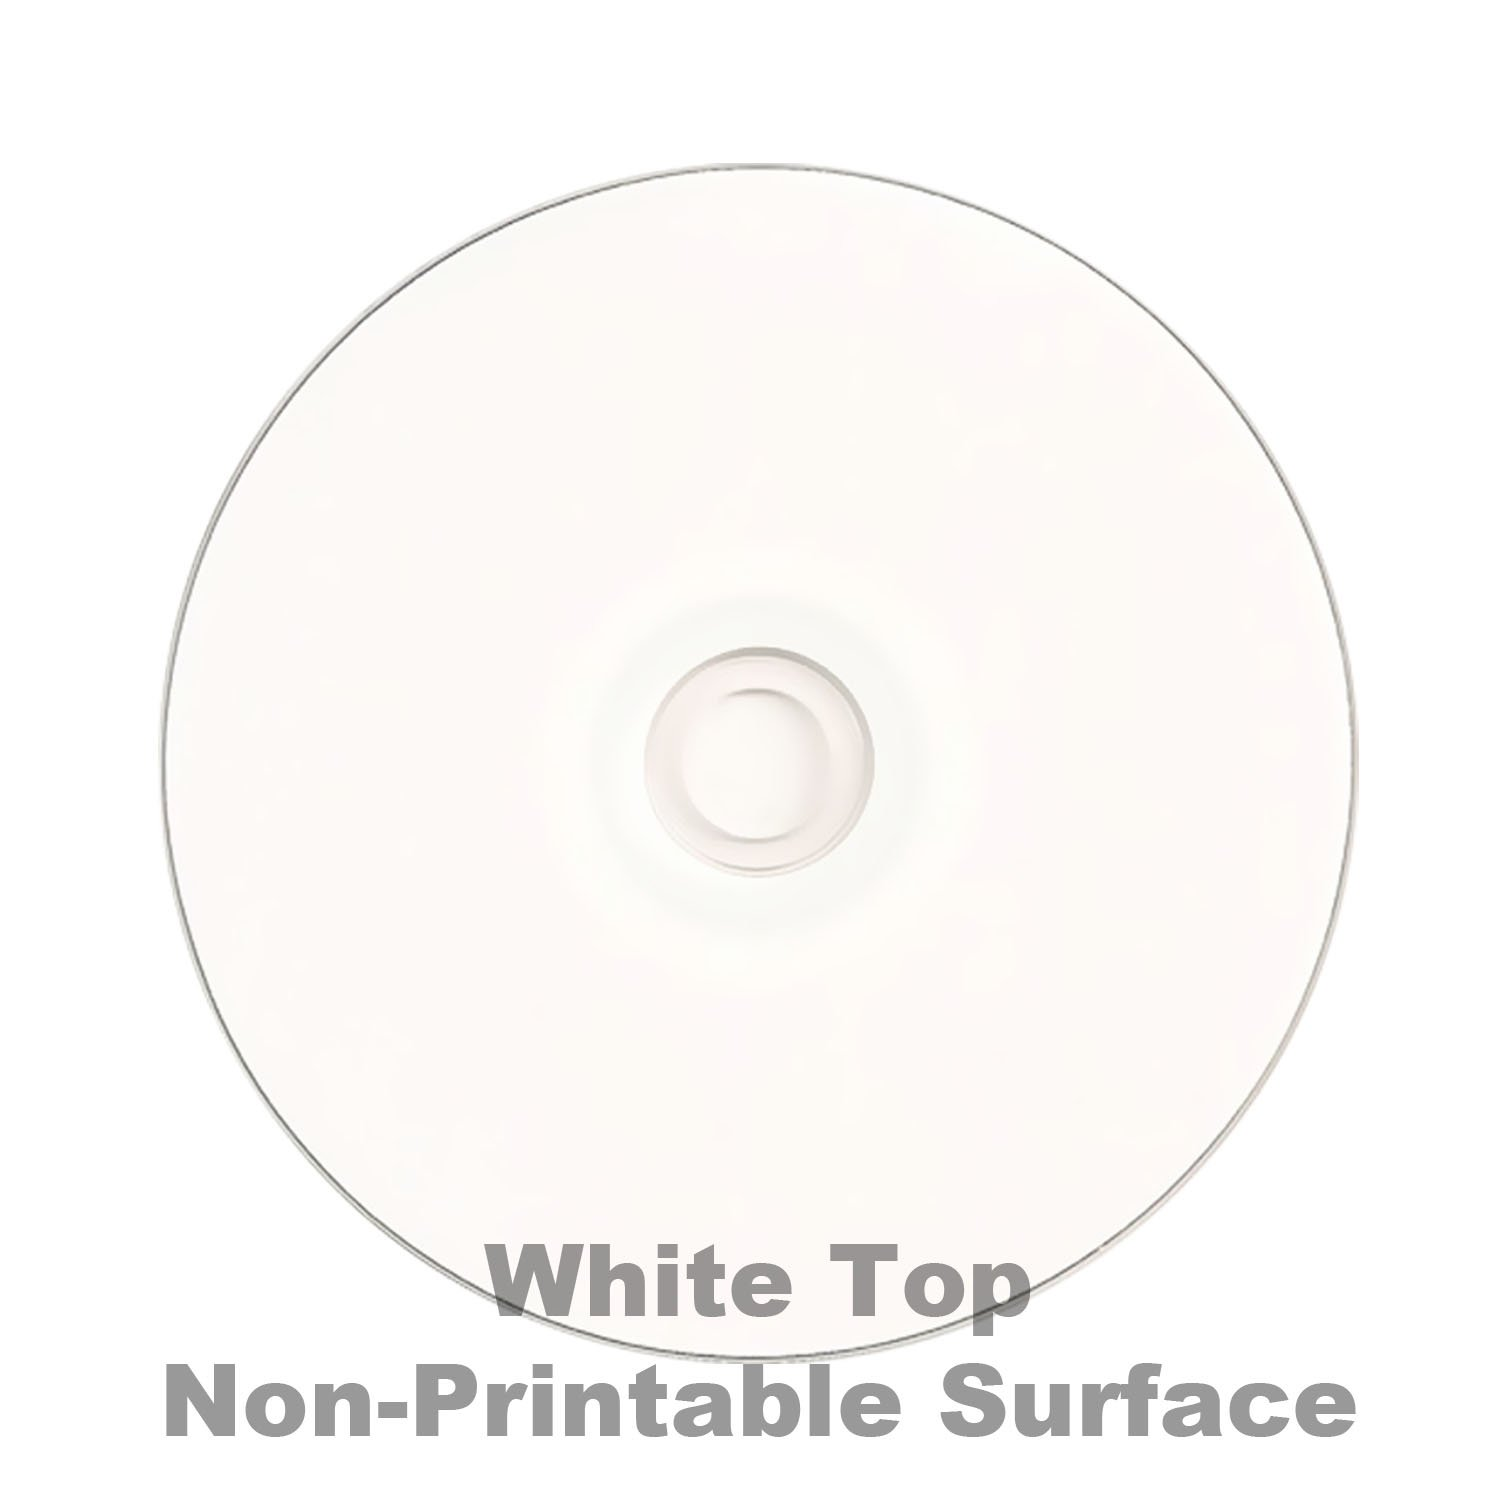 Smart Buy 100 Pack DVD-R 4.7gb 16x White Top Blank Data Video Movie Record Disc, 100 Disc 100pk